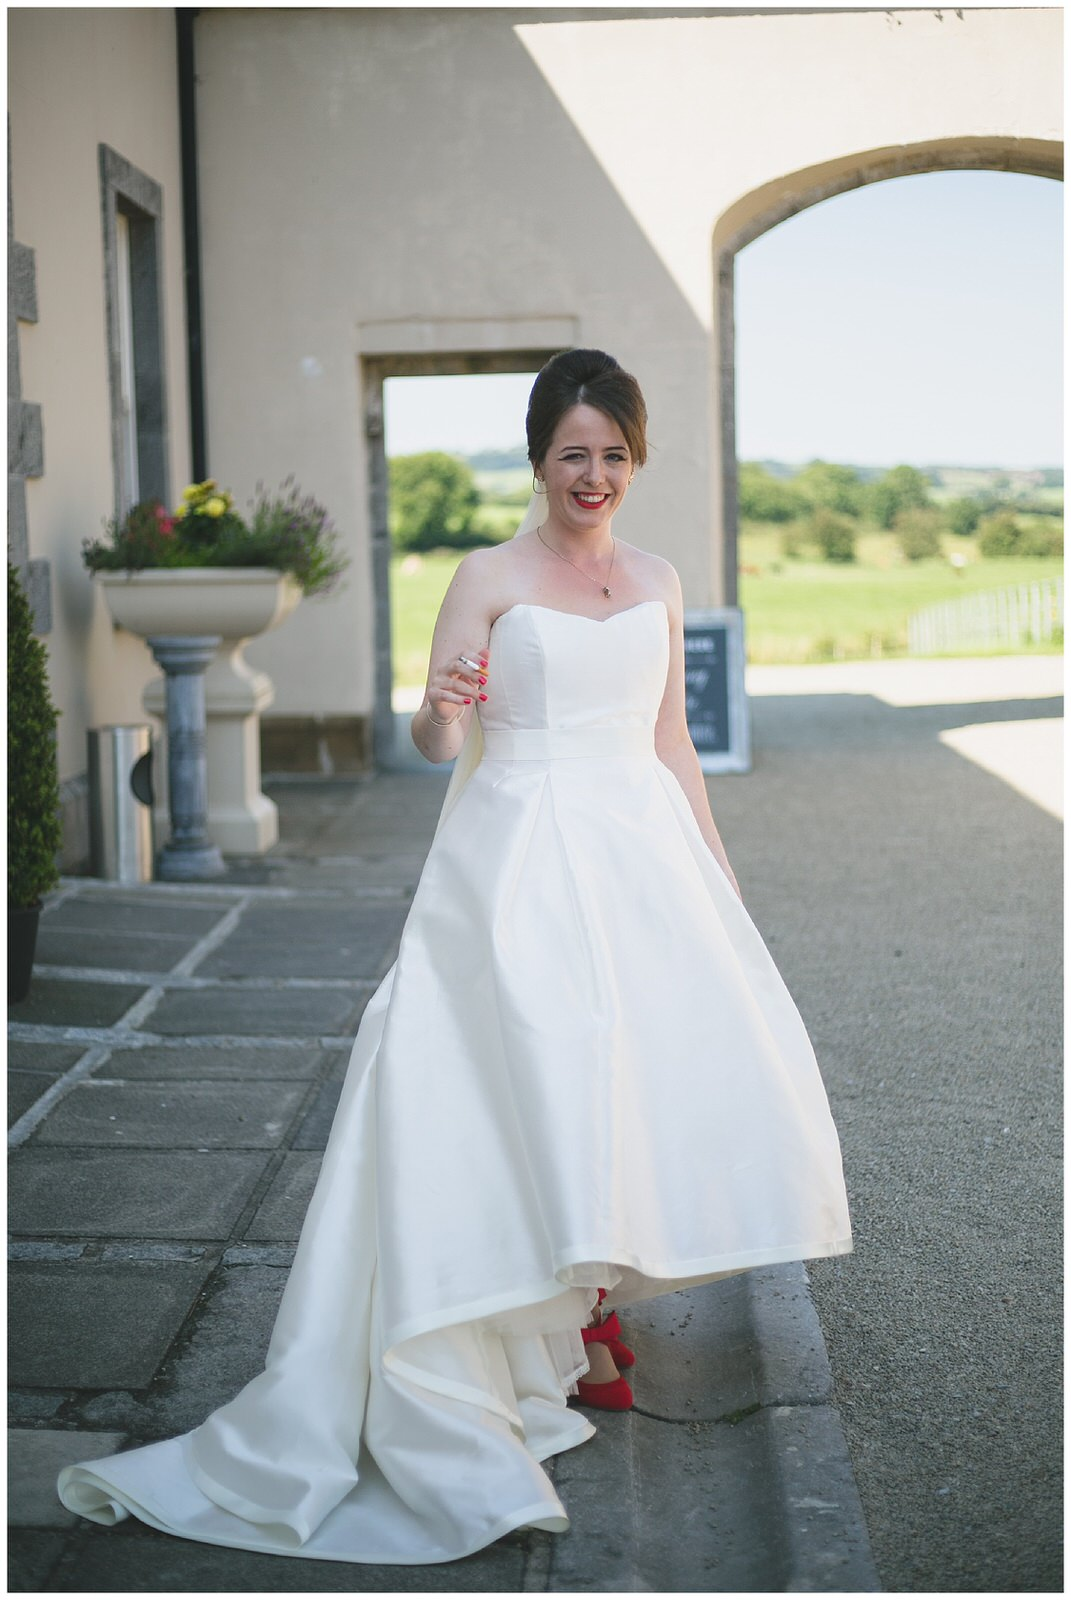 Stunning 3/4 length satin wedding dress with a long train and sweetheart neckline